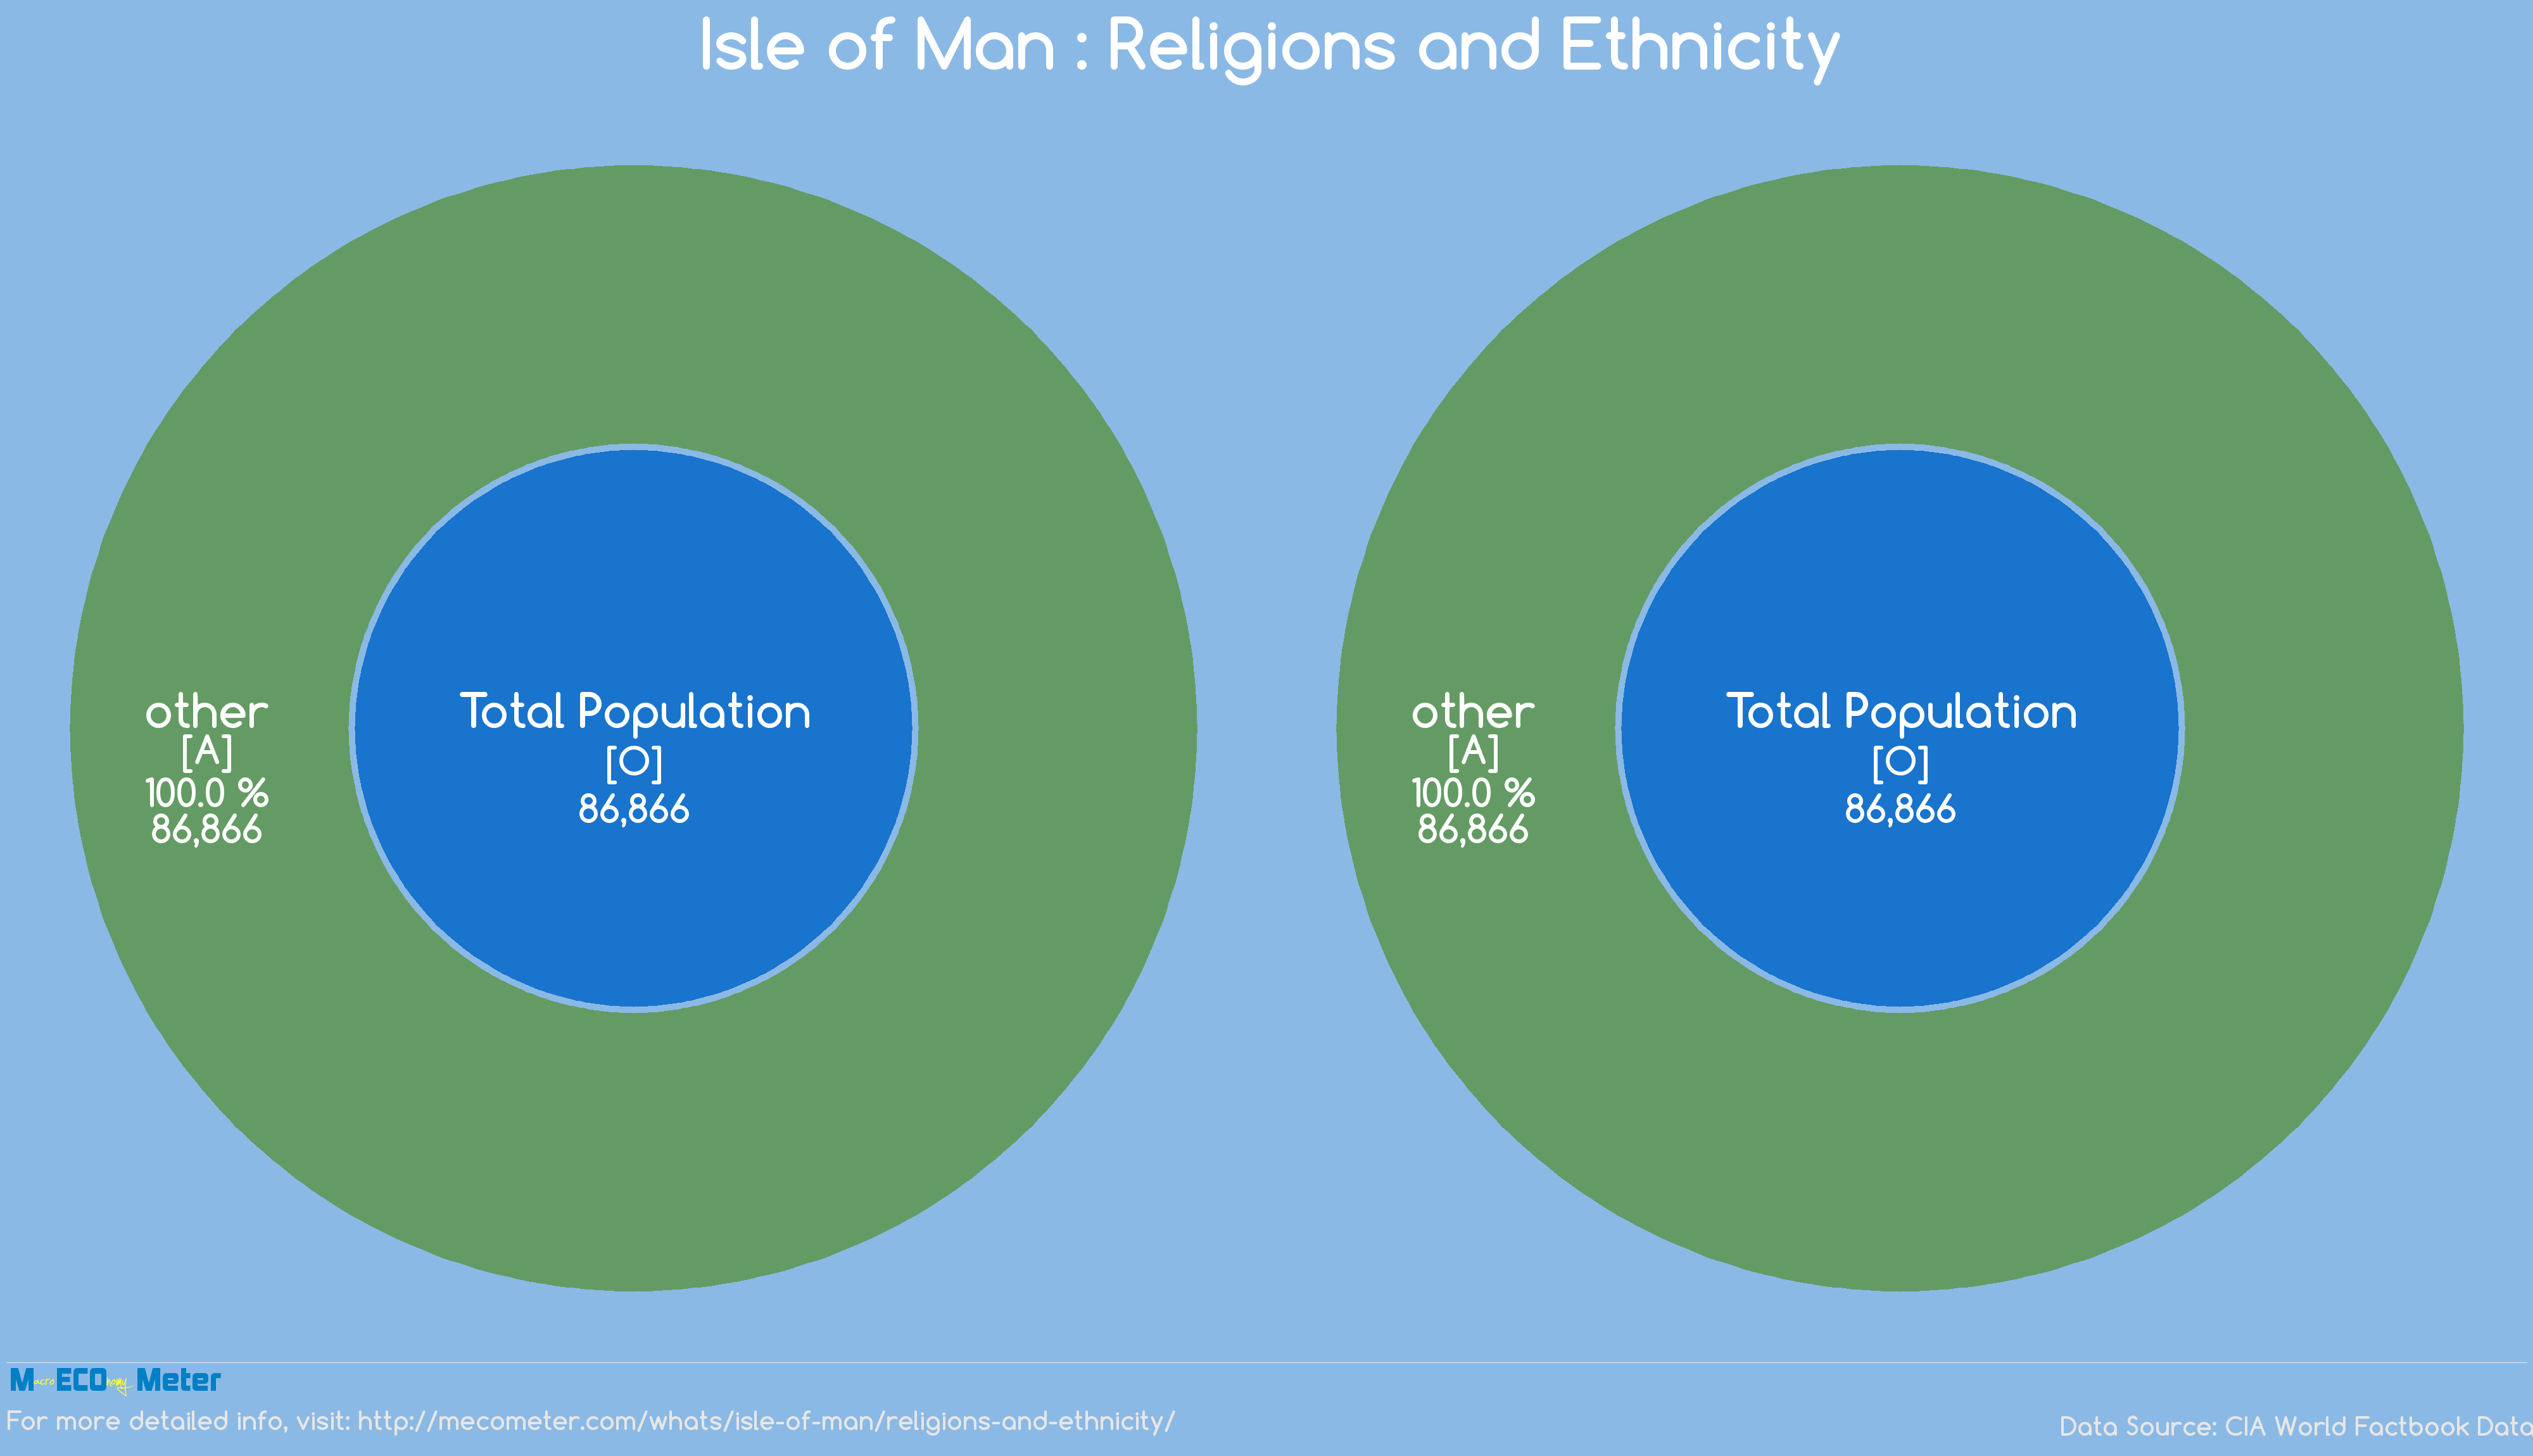 Isle of Man : Religions and Ethnicity